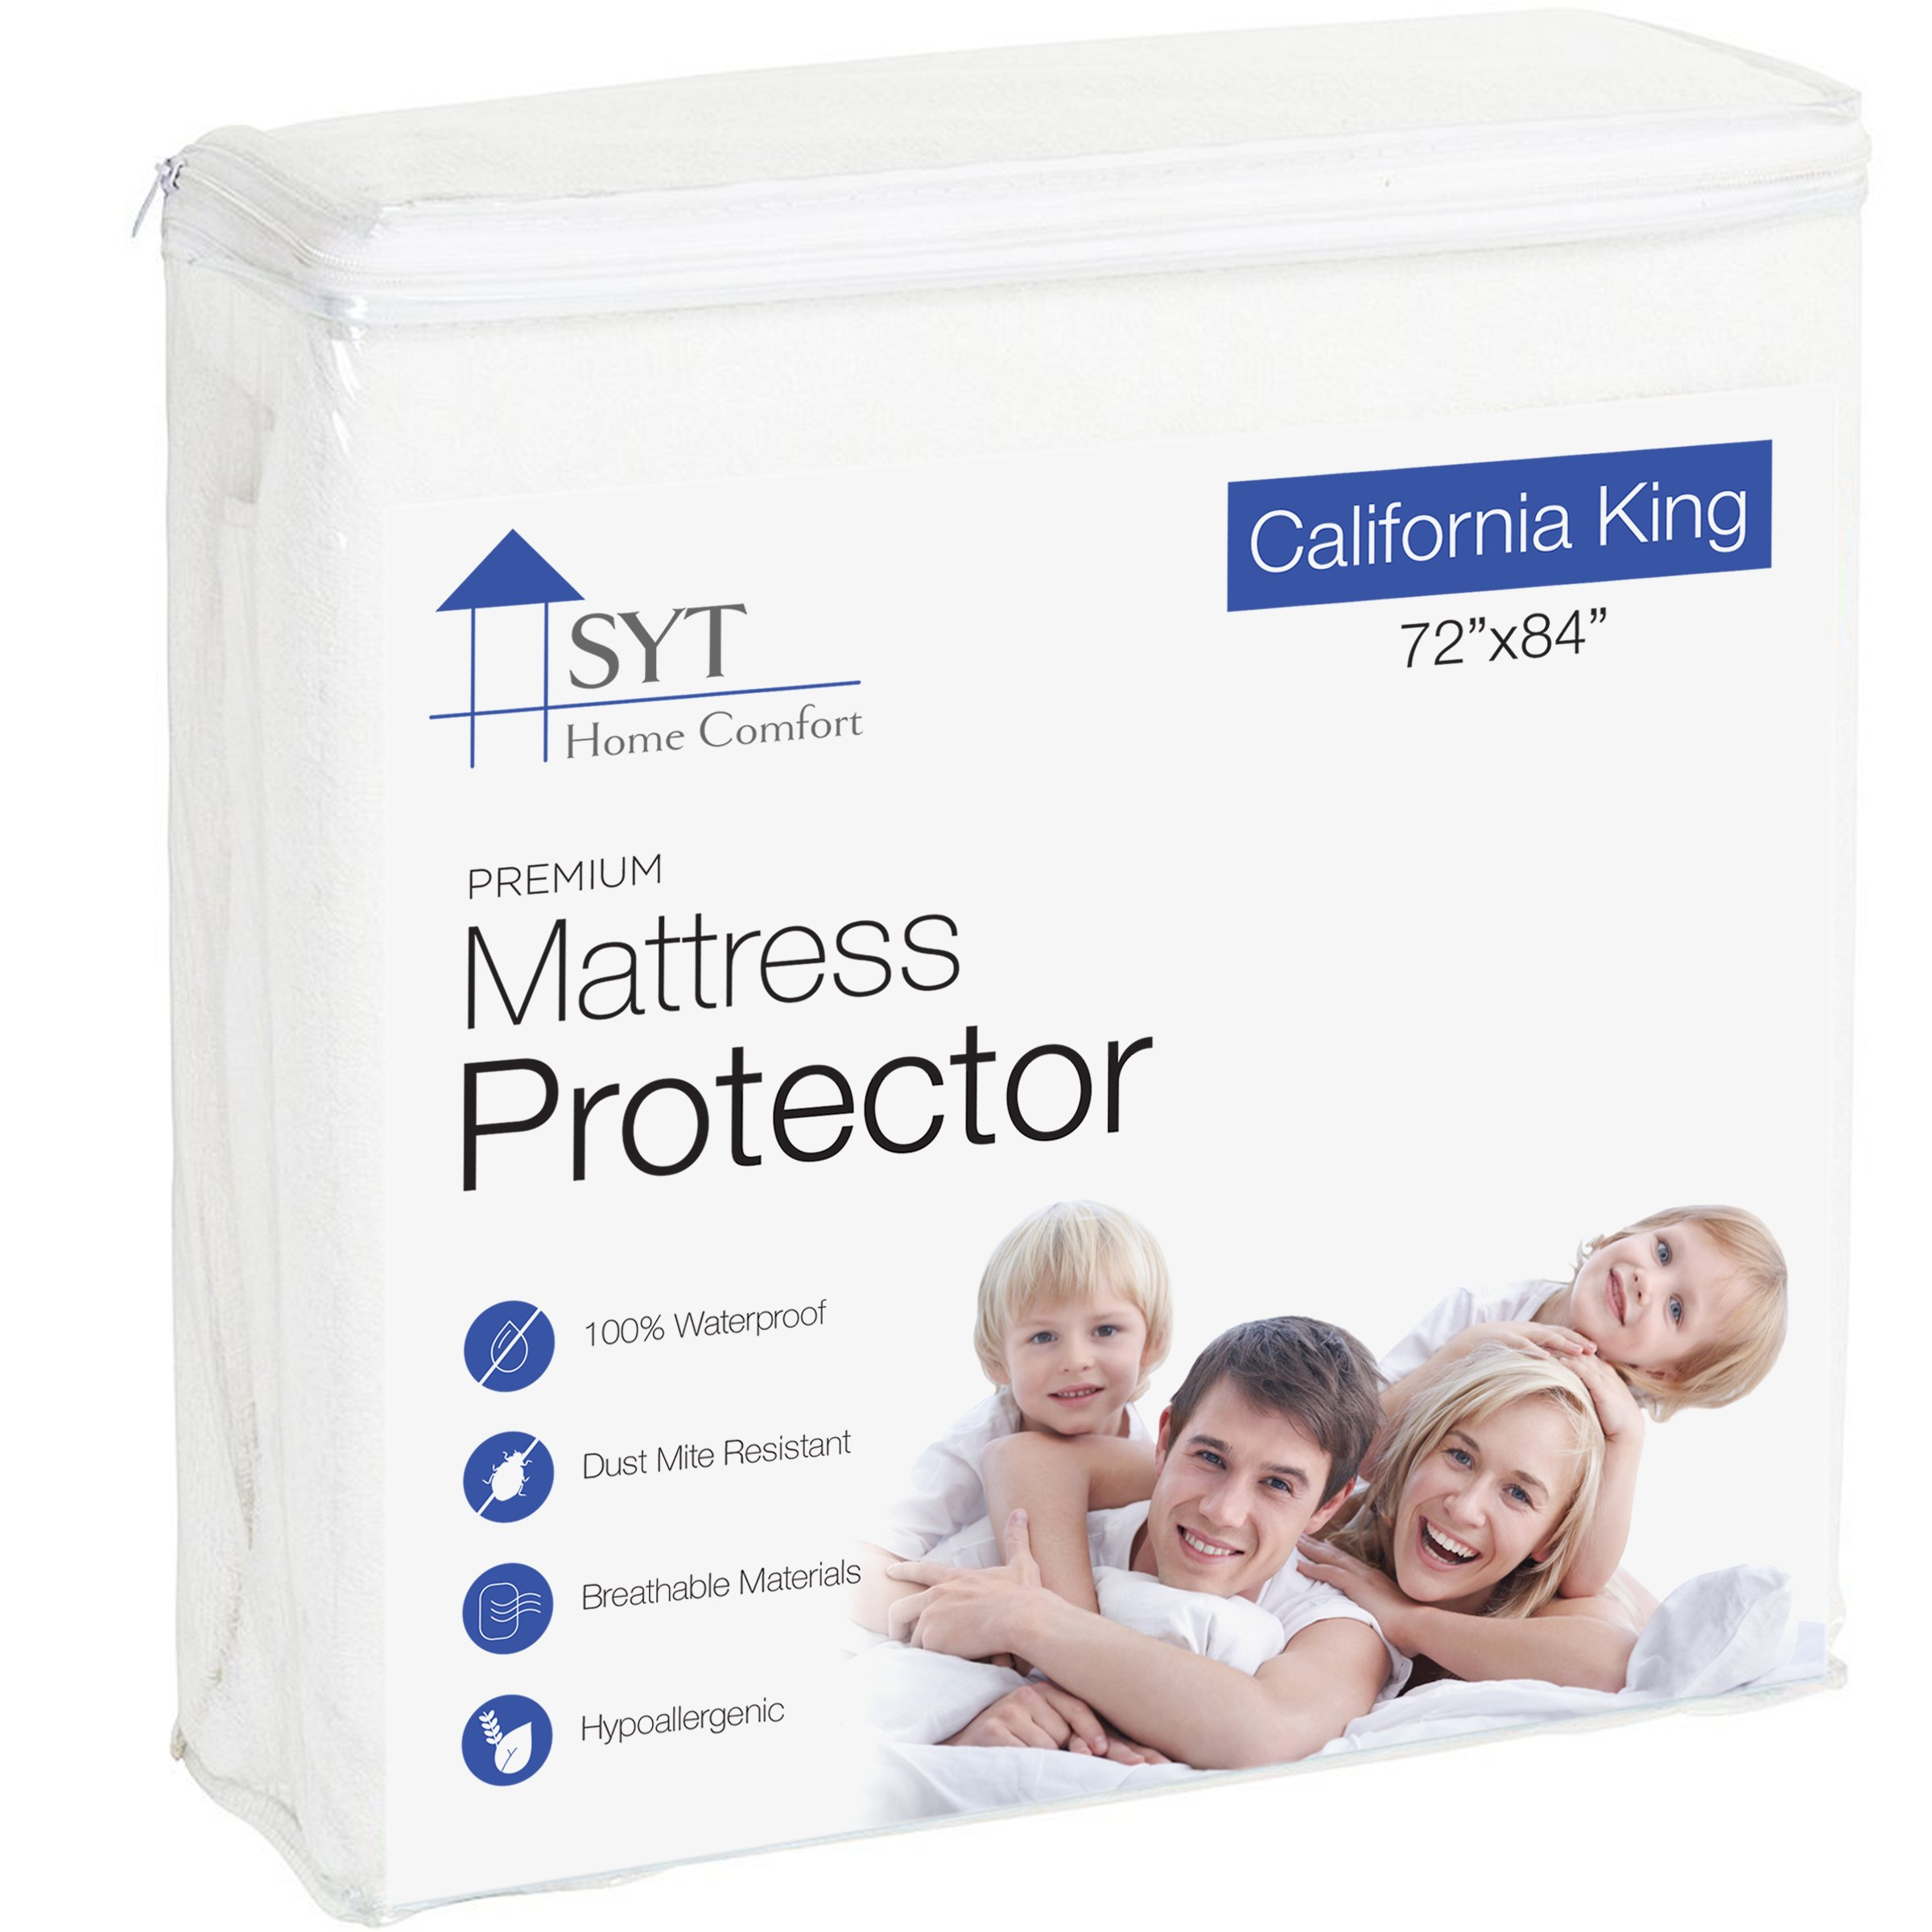 Mattress Protector By SYT Home Comfort, Waterproof, Hypoallergenic, Silent, Multiple Sizes, Cotten Terry (California King)